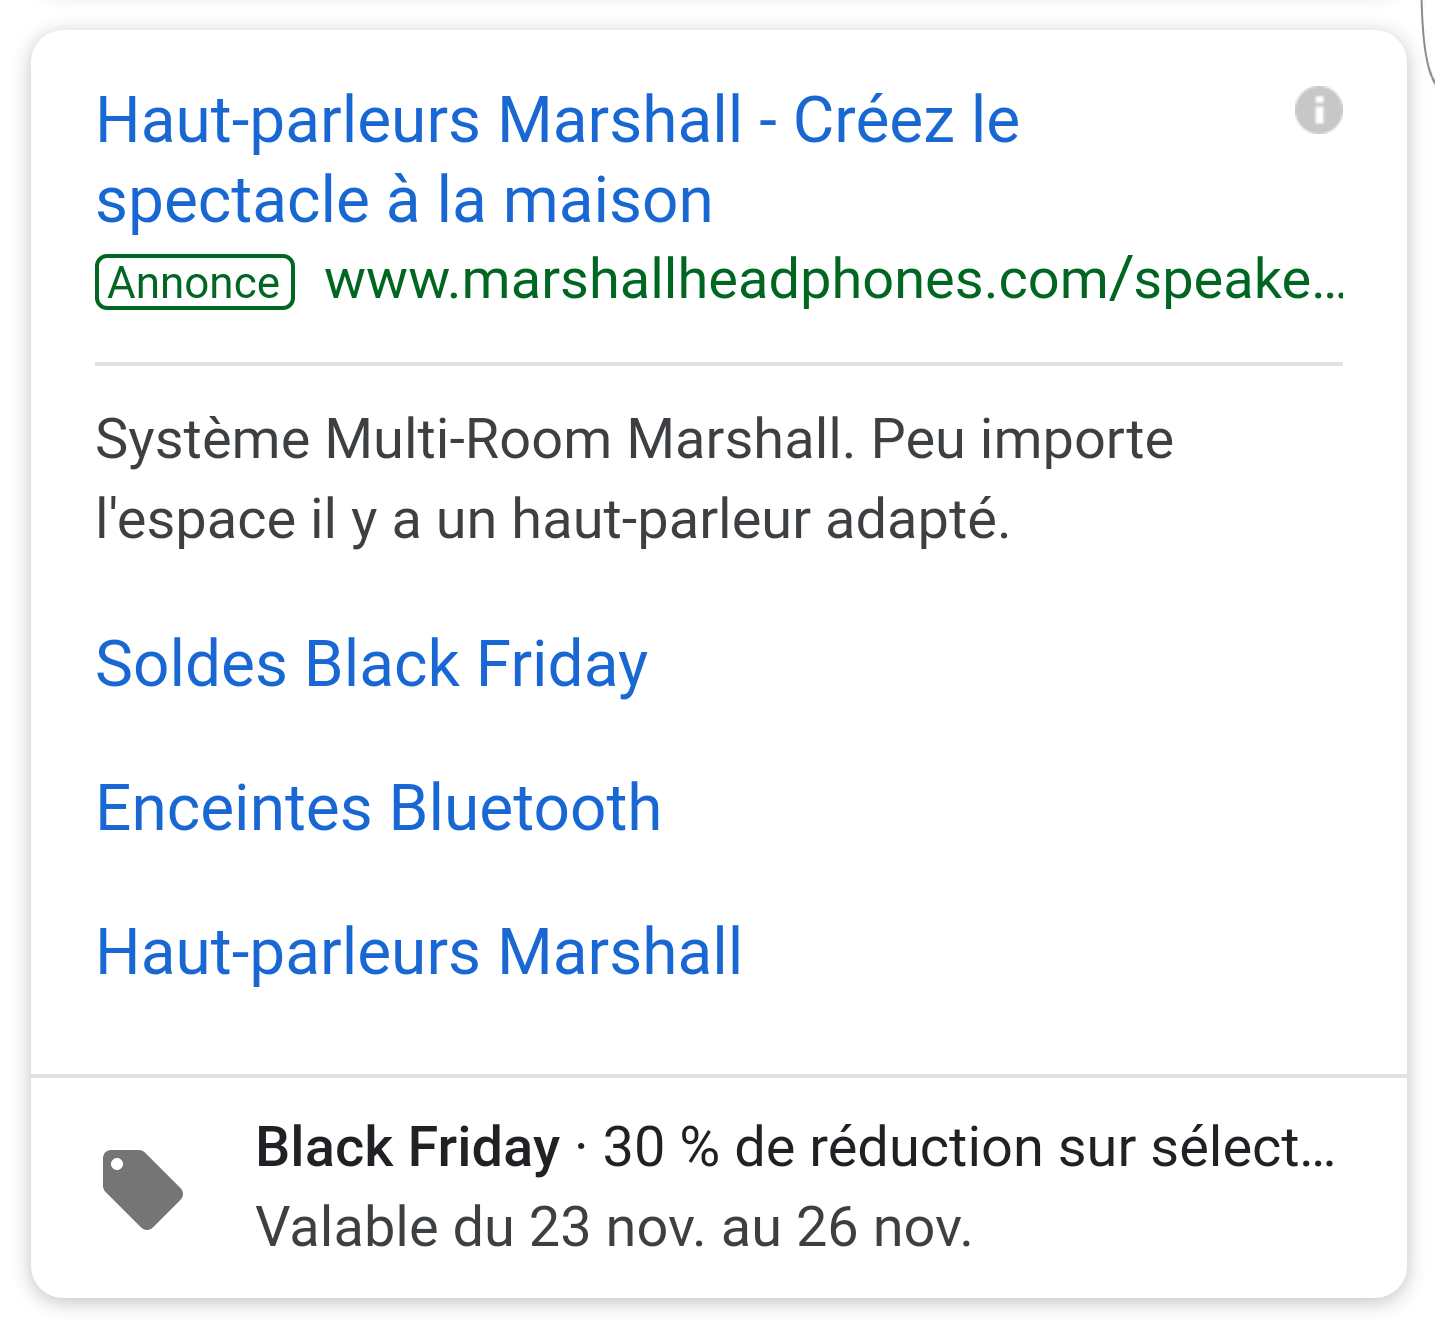 Exemple d'extension de promotion sur mobile